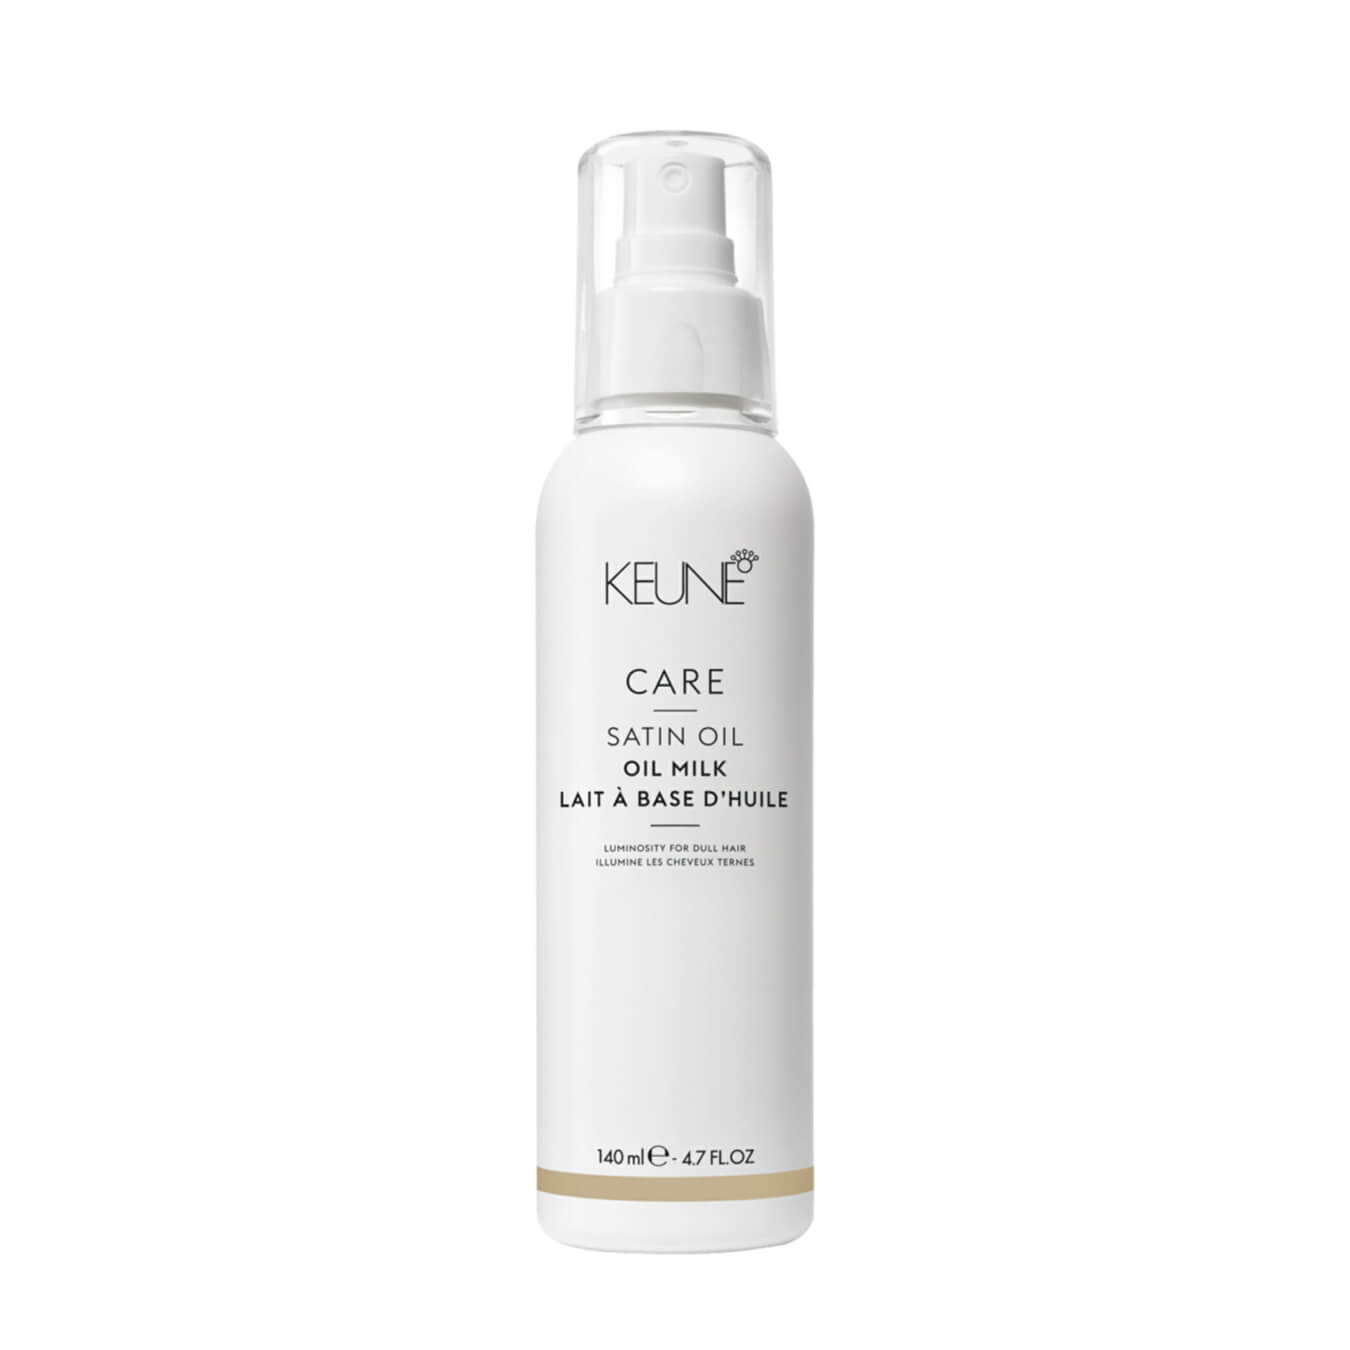 Koop Keune Care Satin Oil Milk 140ml